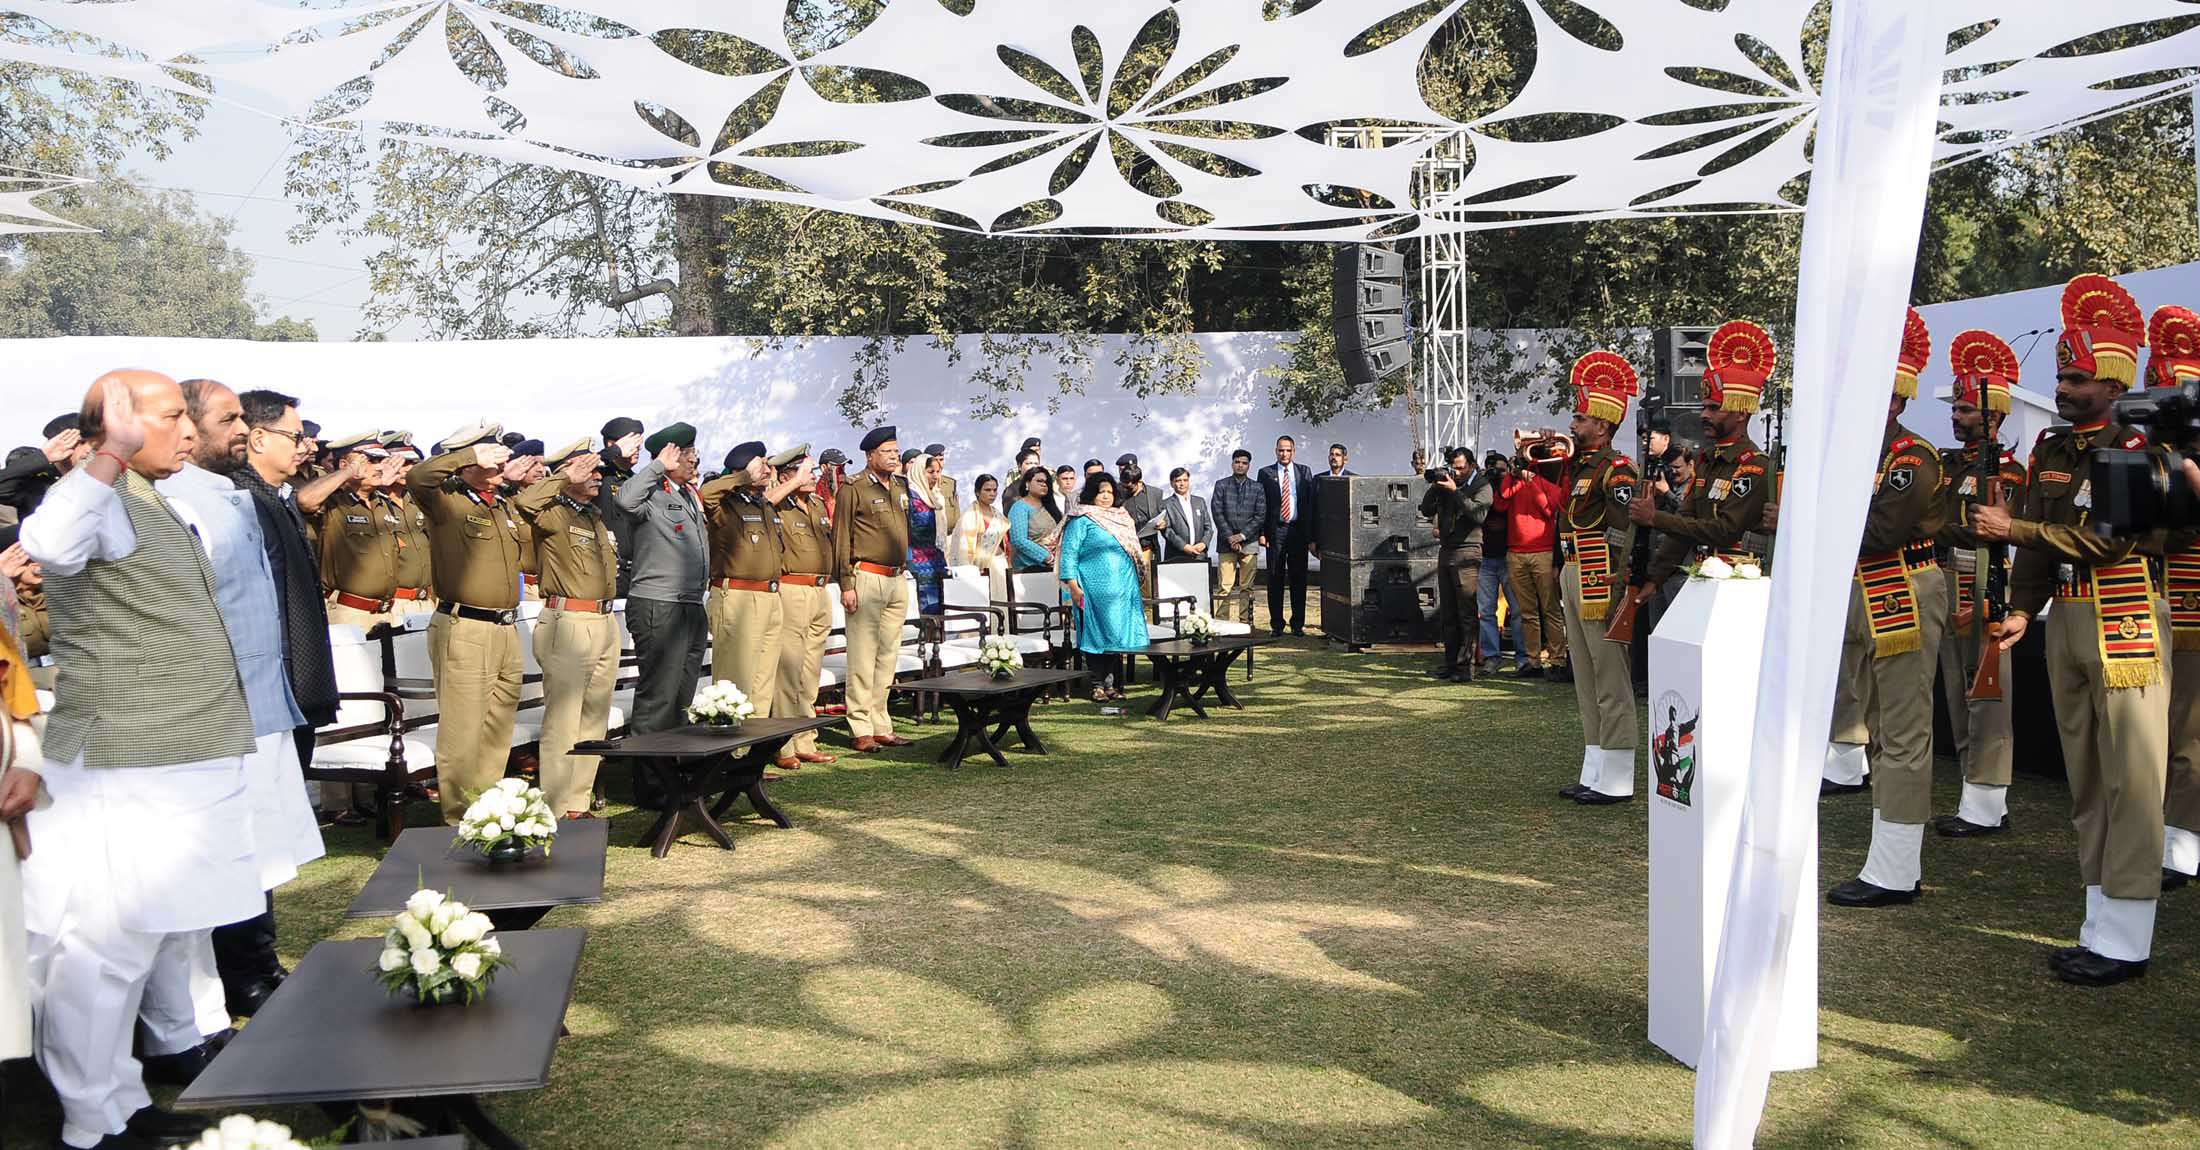 """The Union Home Minister, Shri Rajnath Singh paying tributes to the martyrs of Central Armed Police Forces (CAPFs), at a function to raise funds for the """"Bharat ke Veer"""" fund, in New Delhi on January 20, 2018.  The Ministers of State for Home Affairs, Shri Hansraj Gangaram Ahir and Shri Kiren Rijiju are also seen."""